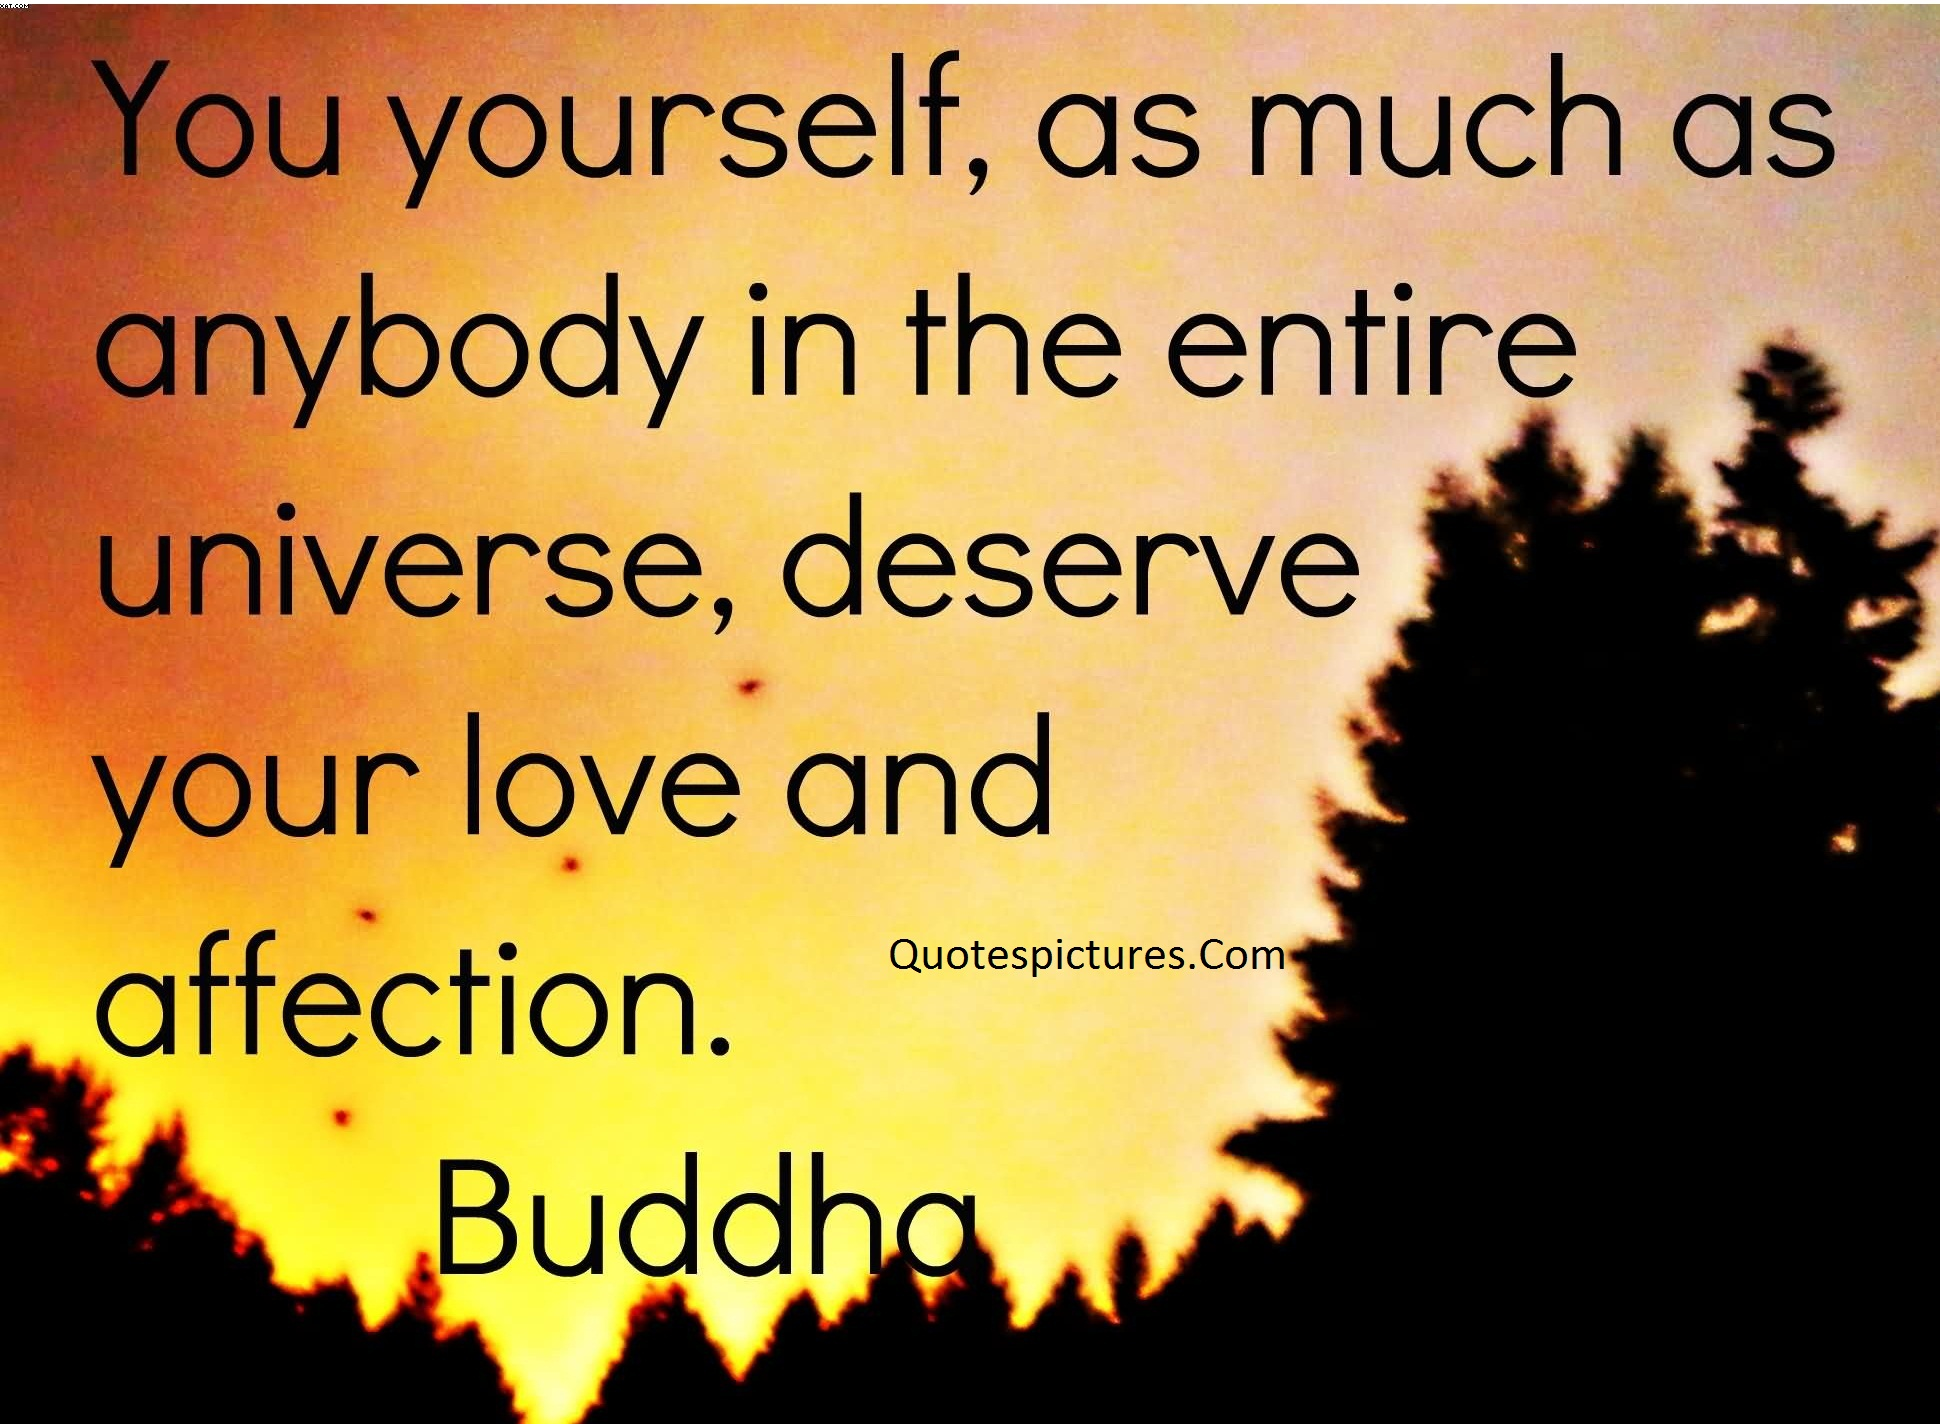 Affection Quotes - The Entire Universe Deserve Your Love And Affection By Buddha